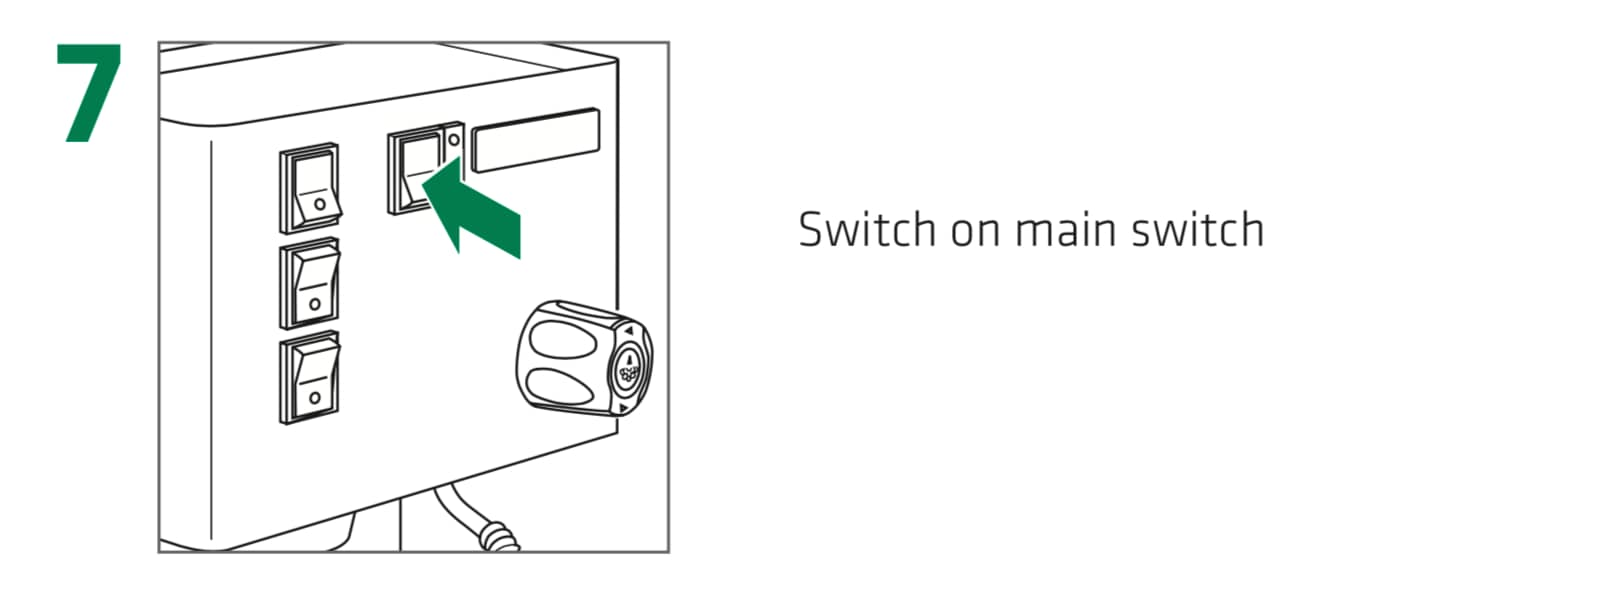 How to set up the Rancilio Silvia Espresso Machine, Step 7 : Switch on the main power switch, located to the center right face of the Silvia espresso machine.